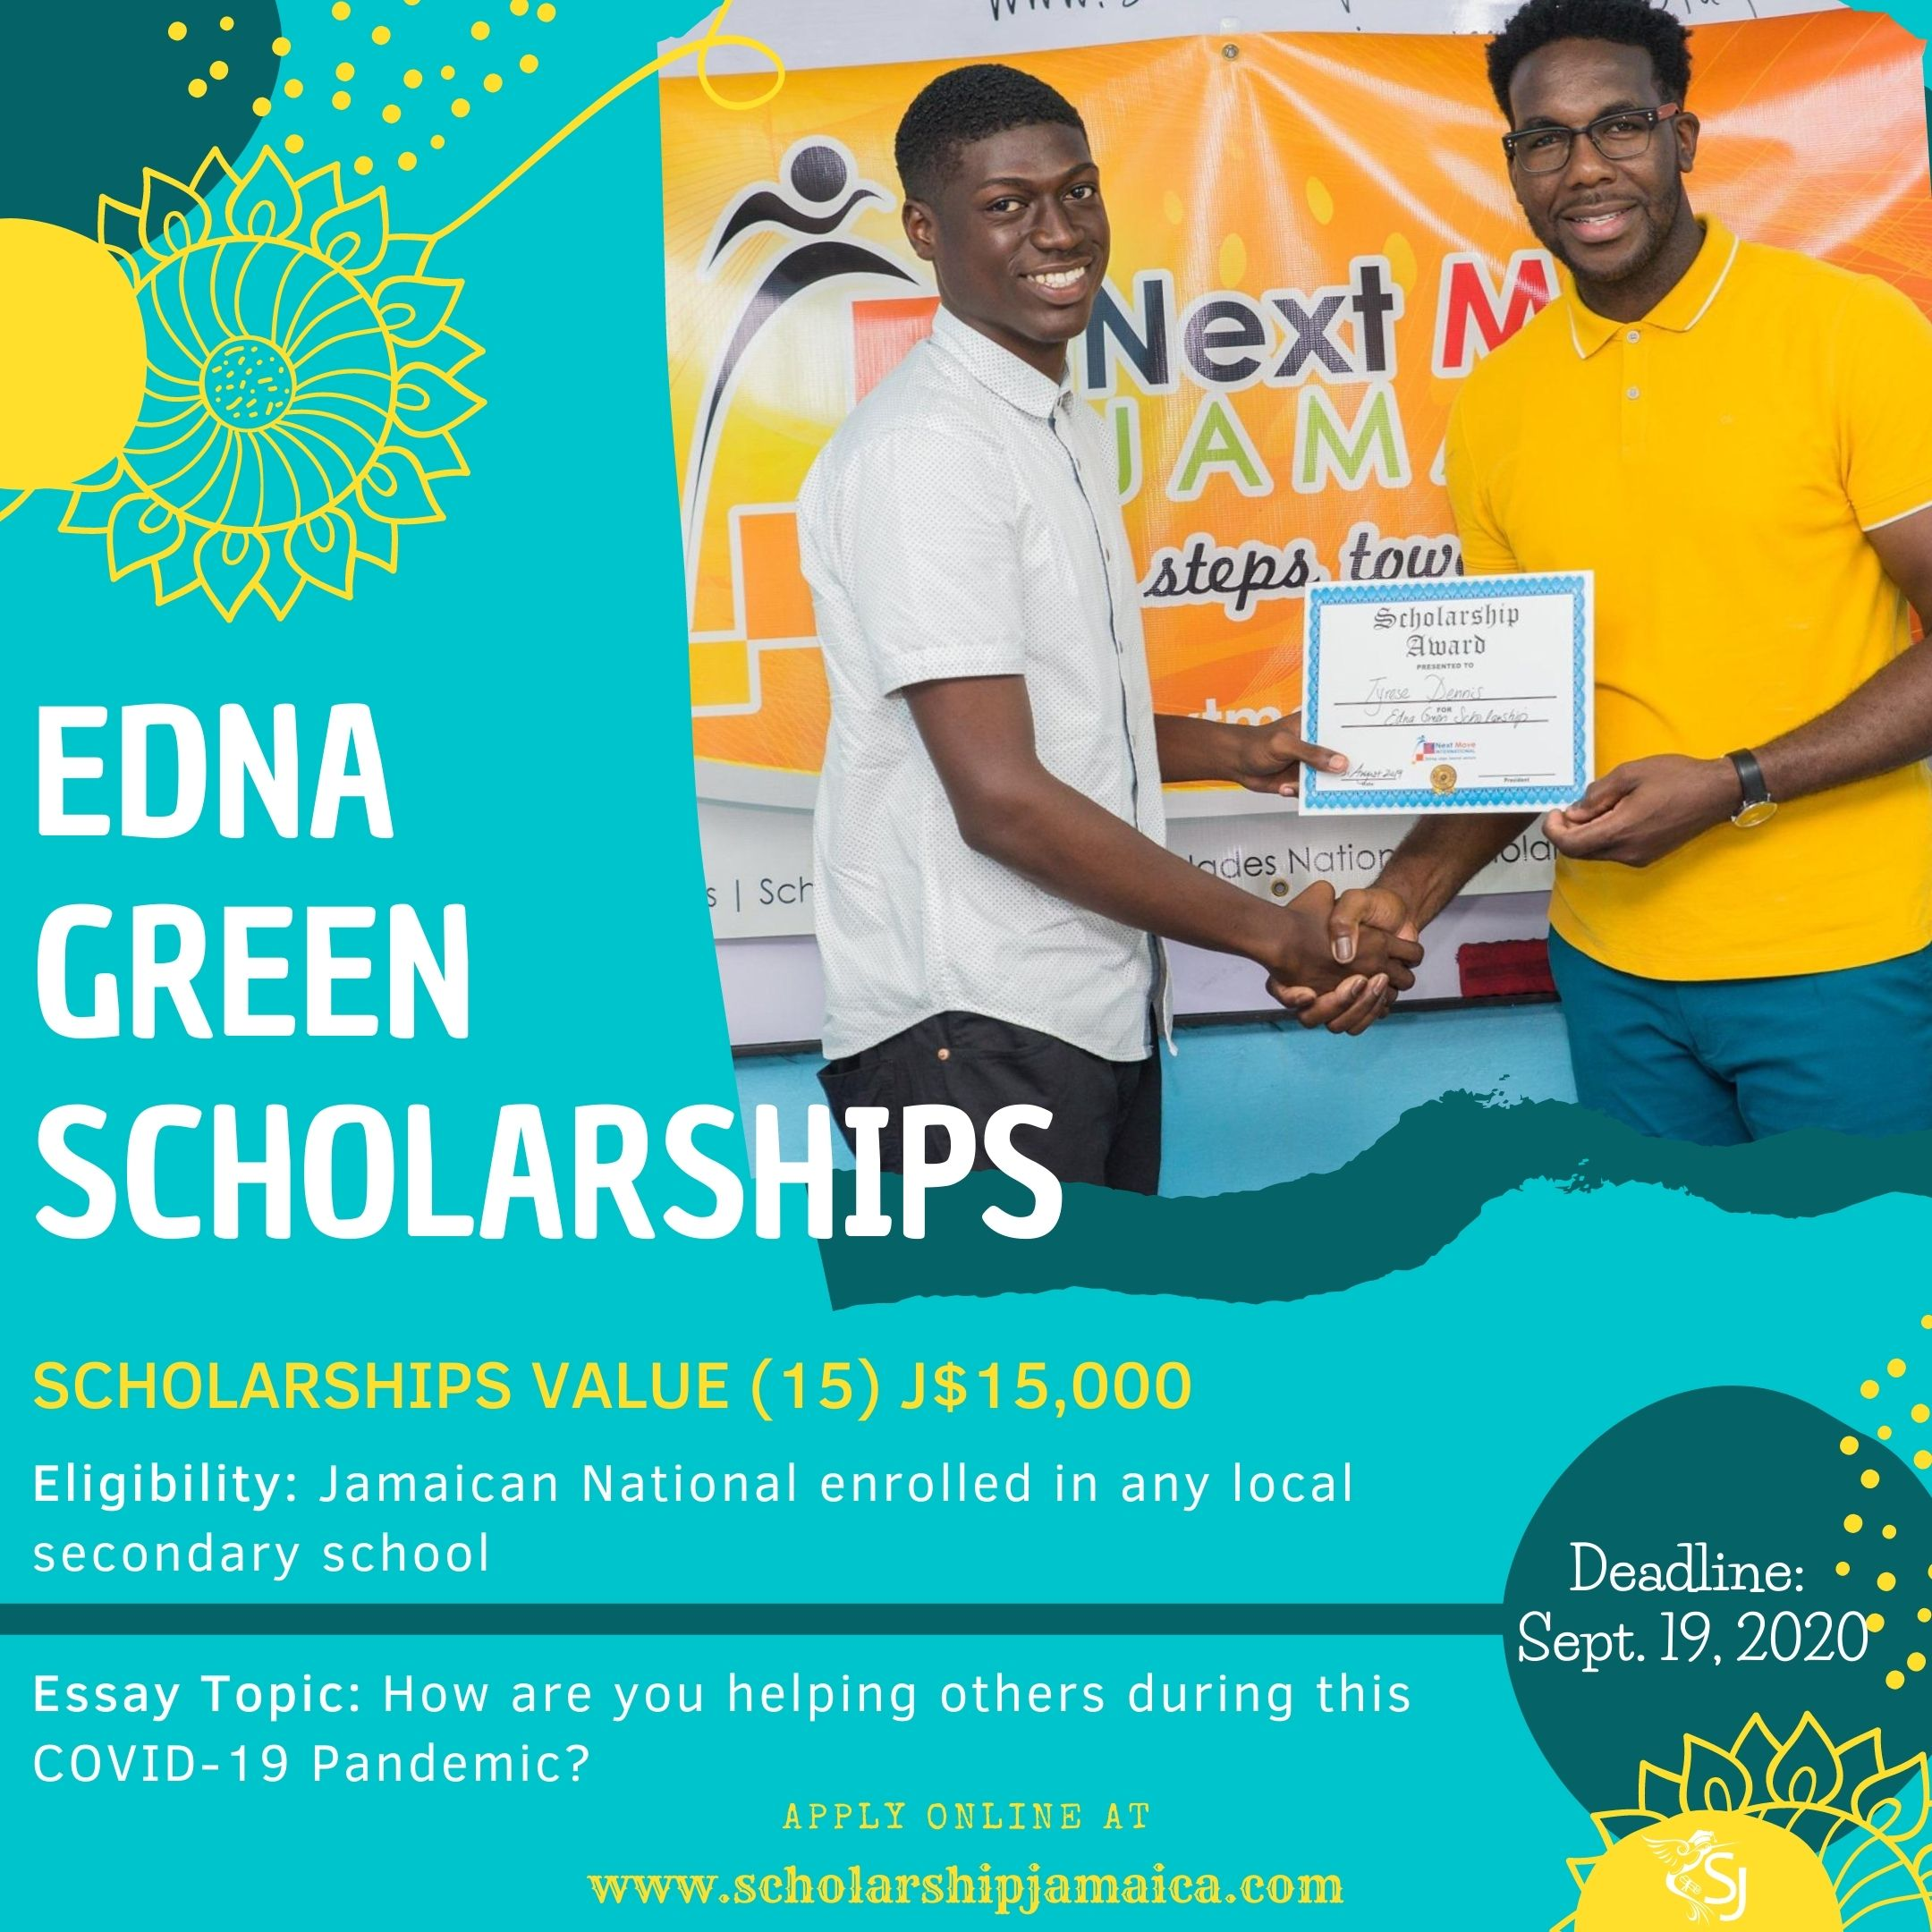 Edna Green Endowment Scholarship programme is offering 15 scholarships in the value of J$15,000 each to qualified and needy students in Jamaica.